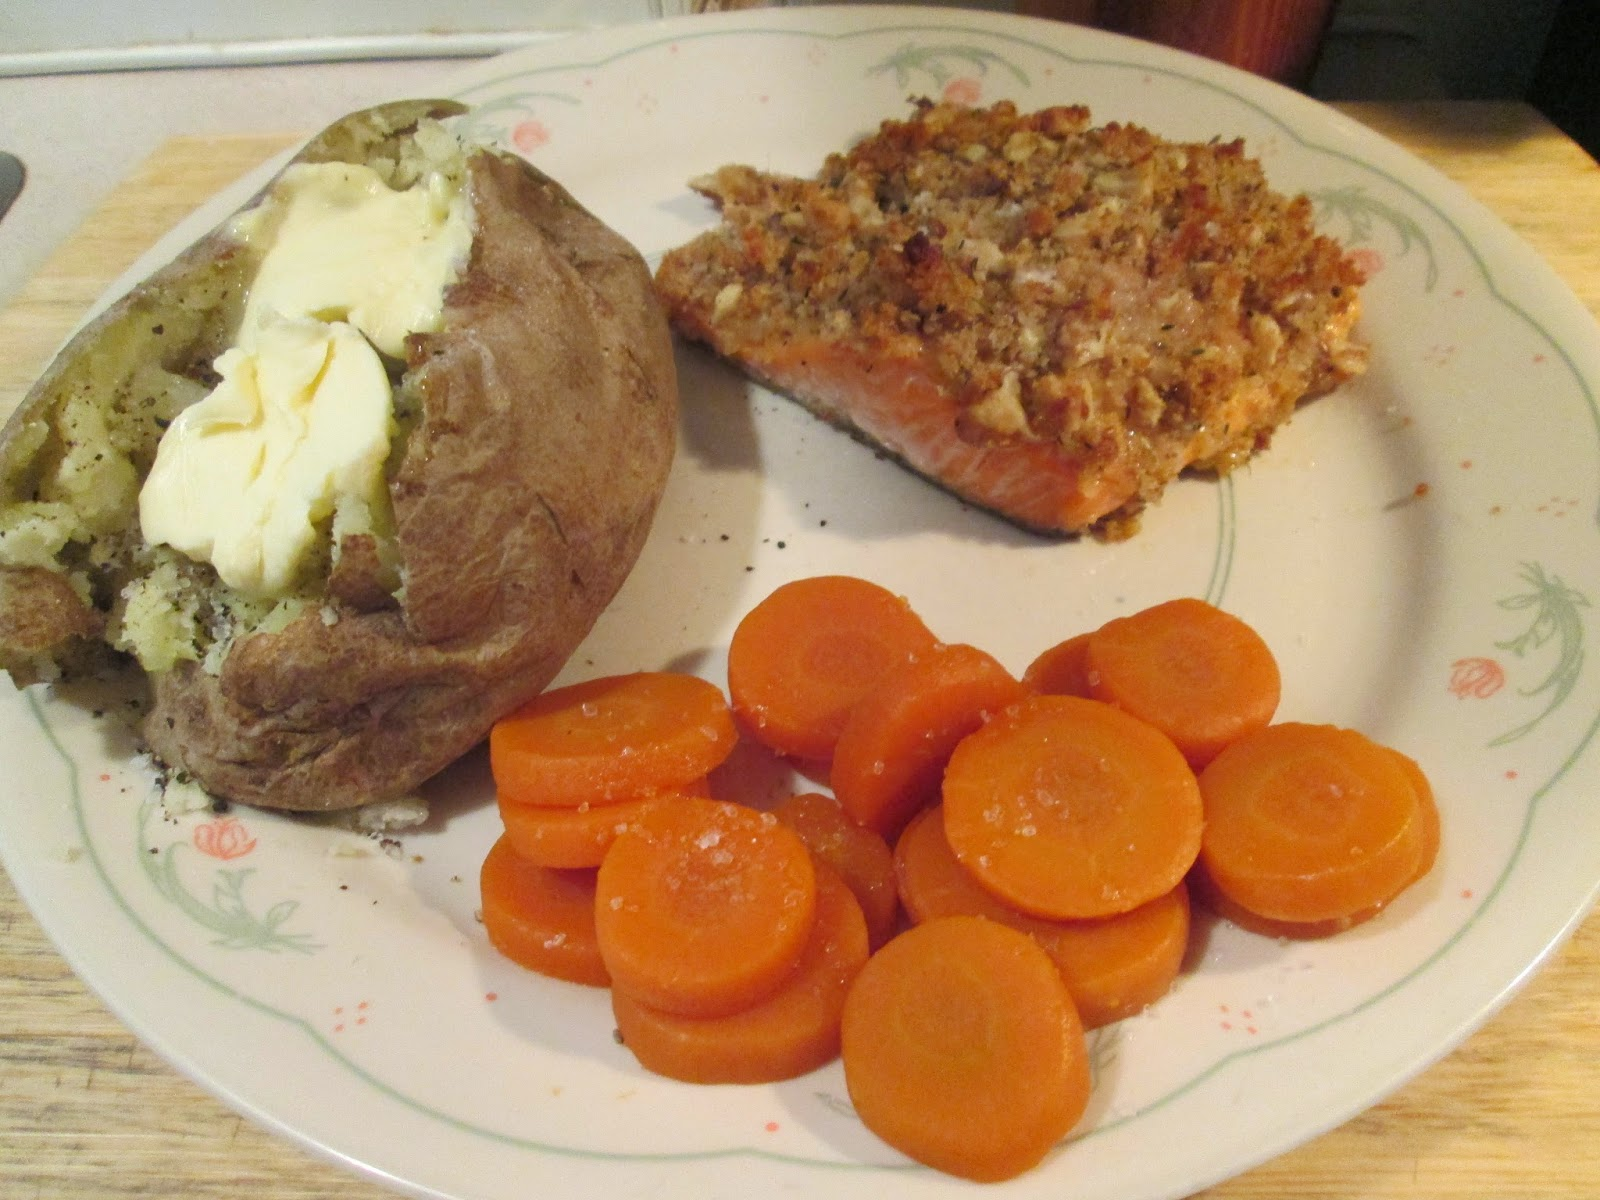 walnut-crusted salmon w/ baked potato and sliced carrots